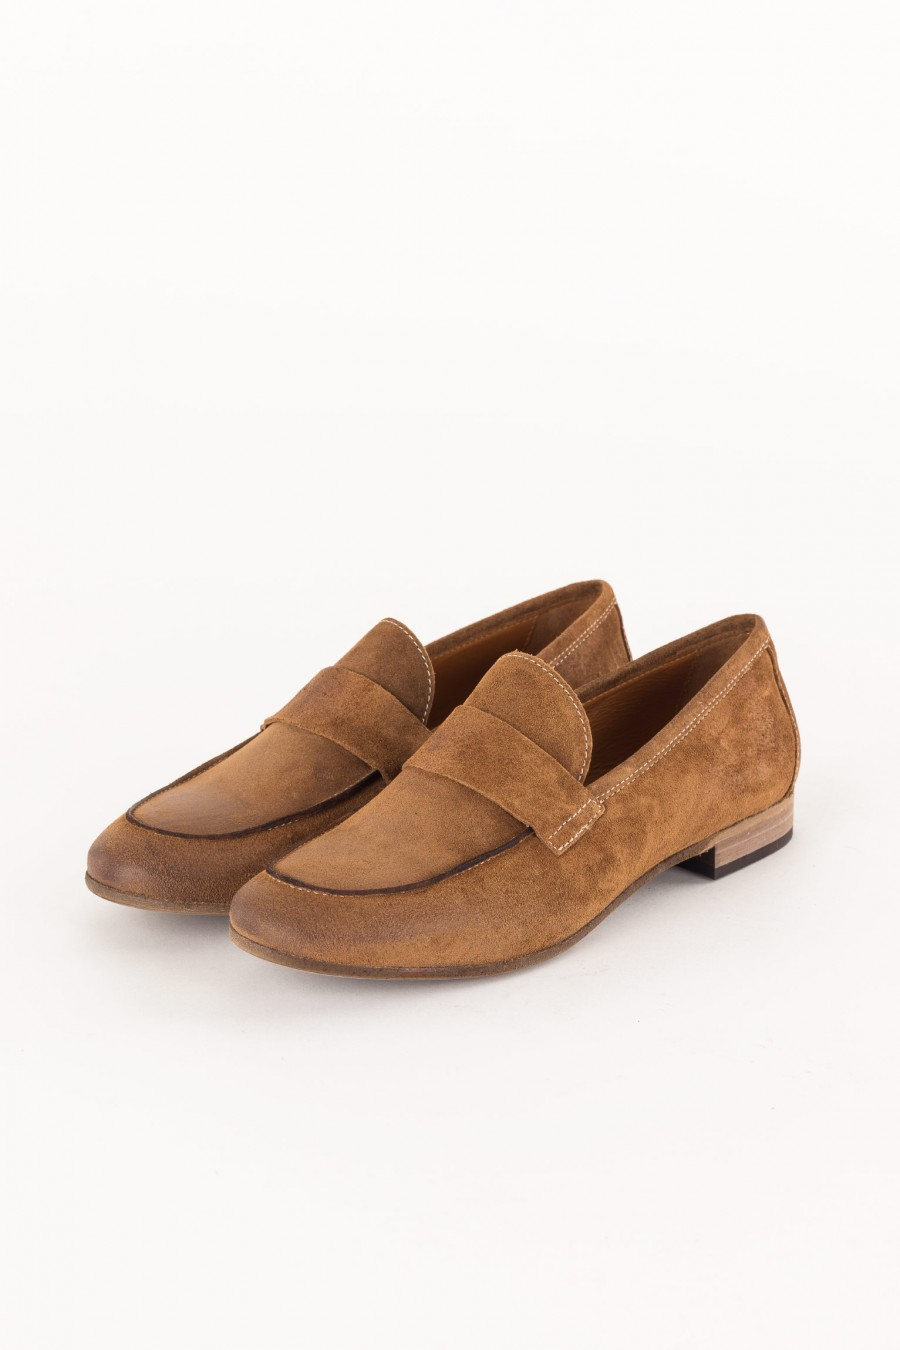 brown suede shoe with band